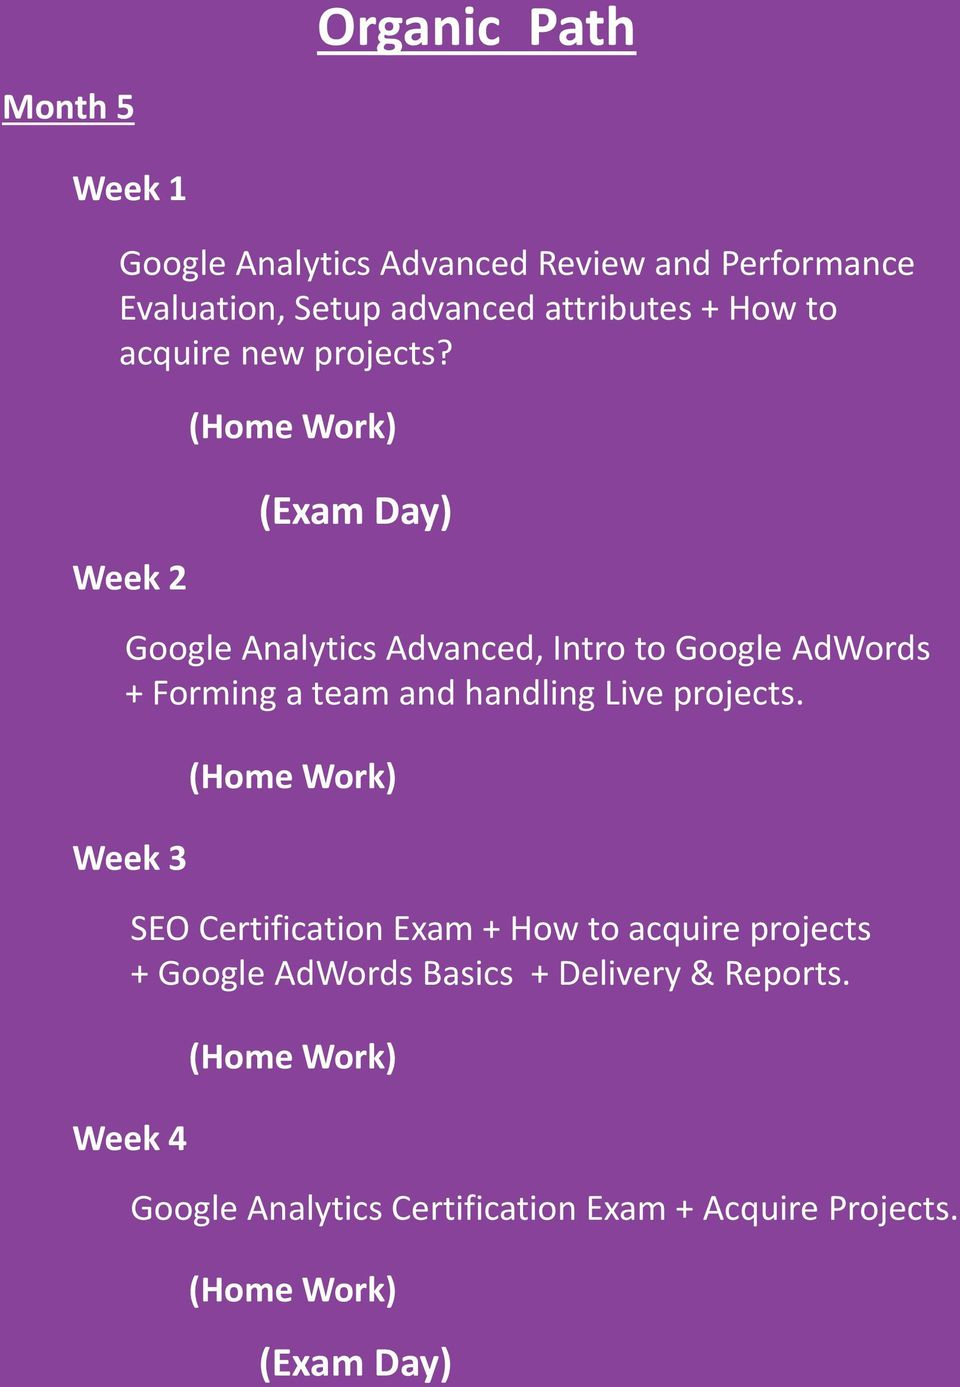 Week 2 Google Analytics Advanced, Intro to Google AdWords + Forming a team and handling Live projects.